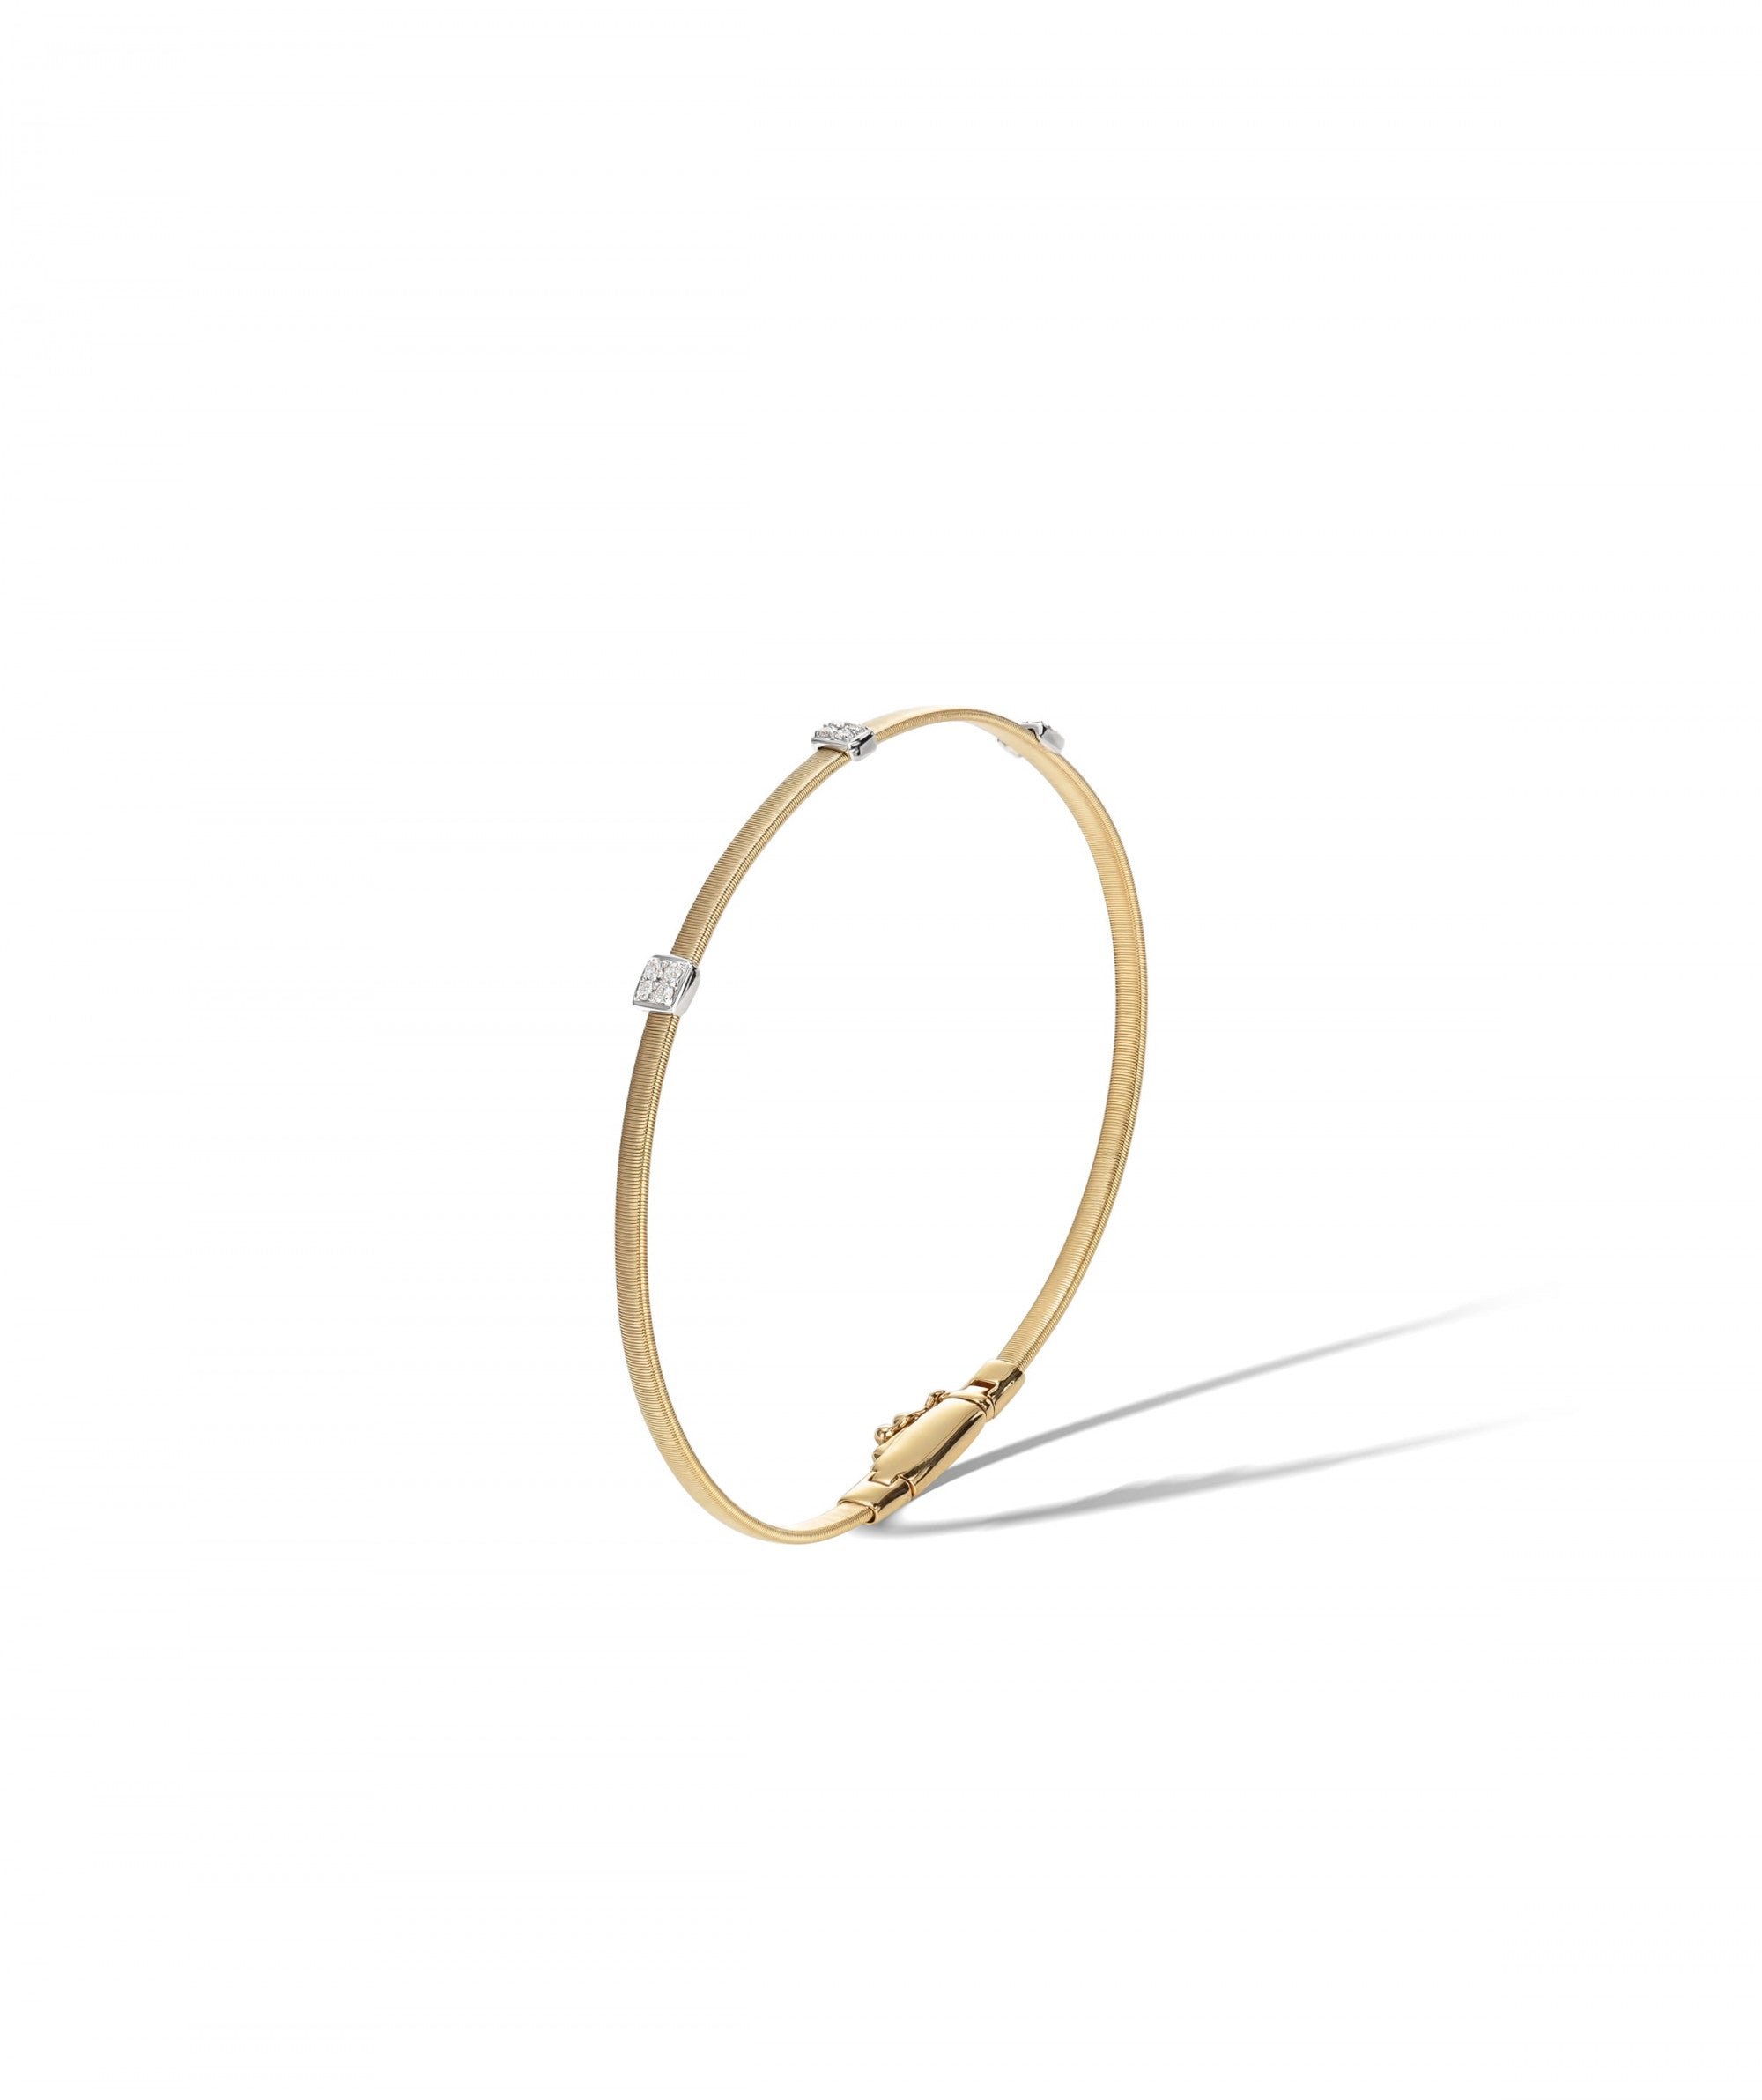 Masai Slender Bracelet in 18k Yellow Gold with 3 Pave Diamond Stations Single Strand - Orsini Jewellers NZ